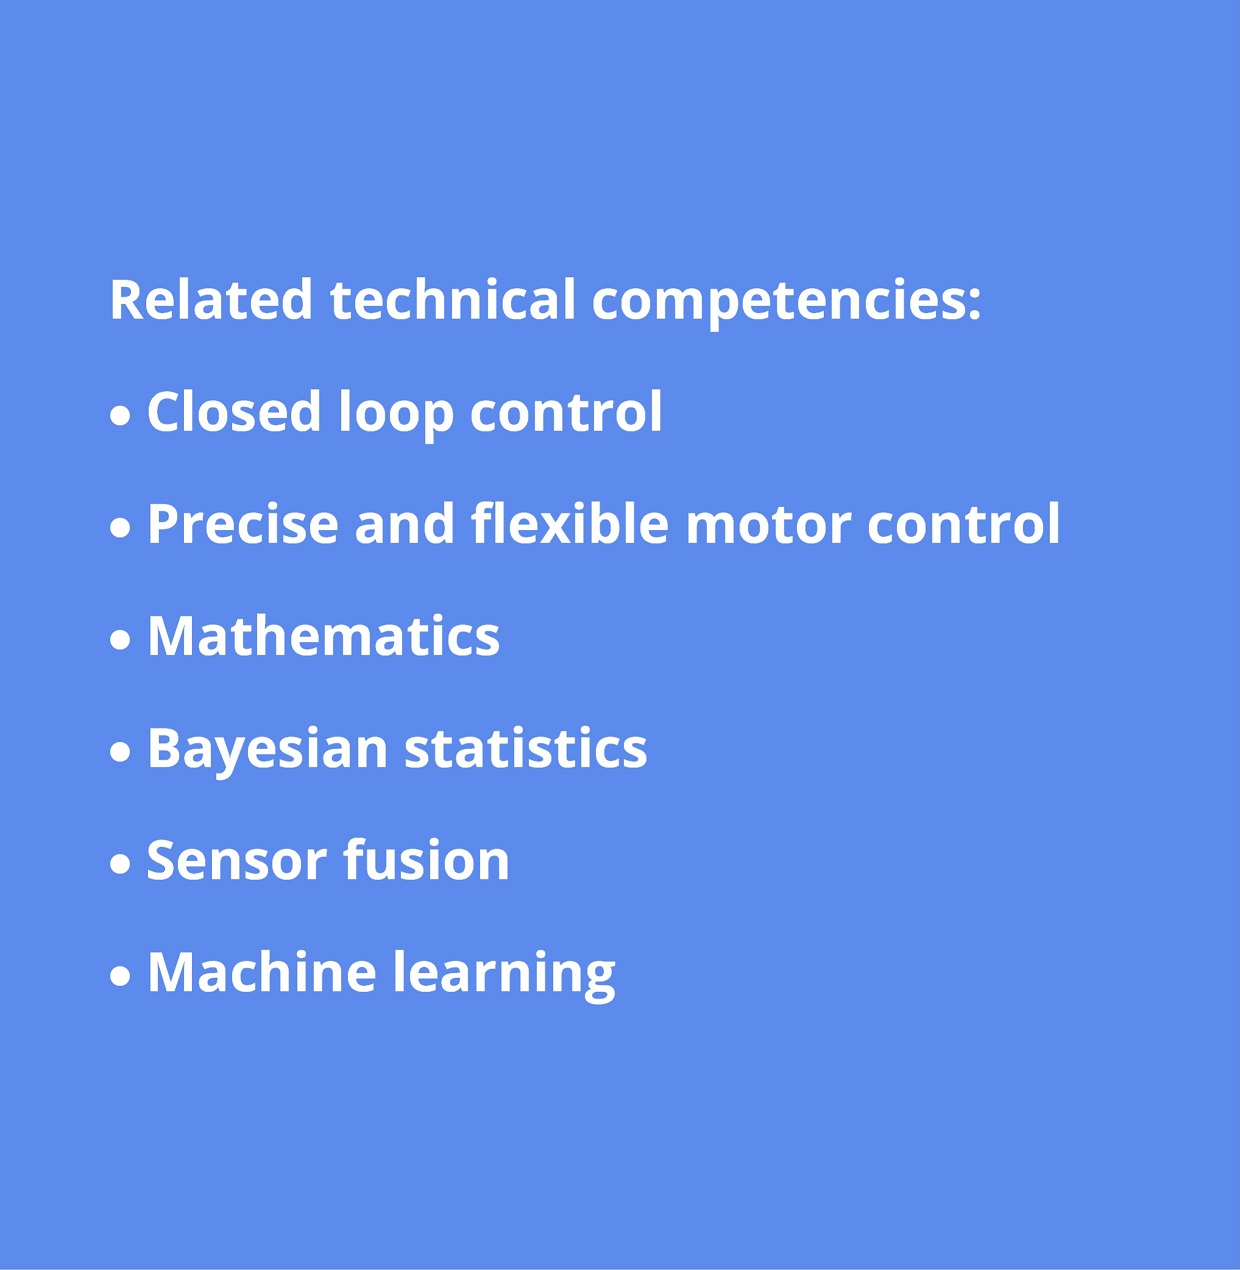 Algorithm development: closed loop control; precise and flexible motor control; mathematics; bayesian statistics; sensor fusion; machine learning